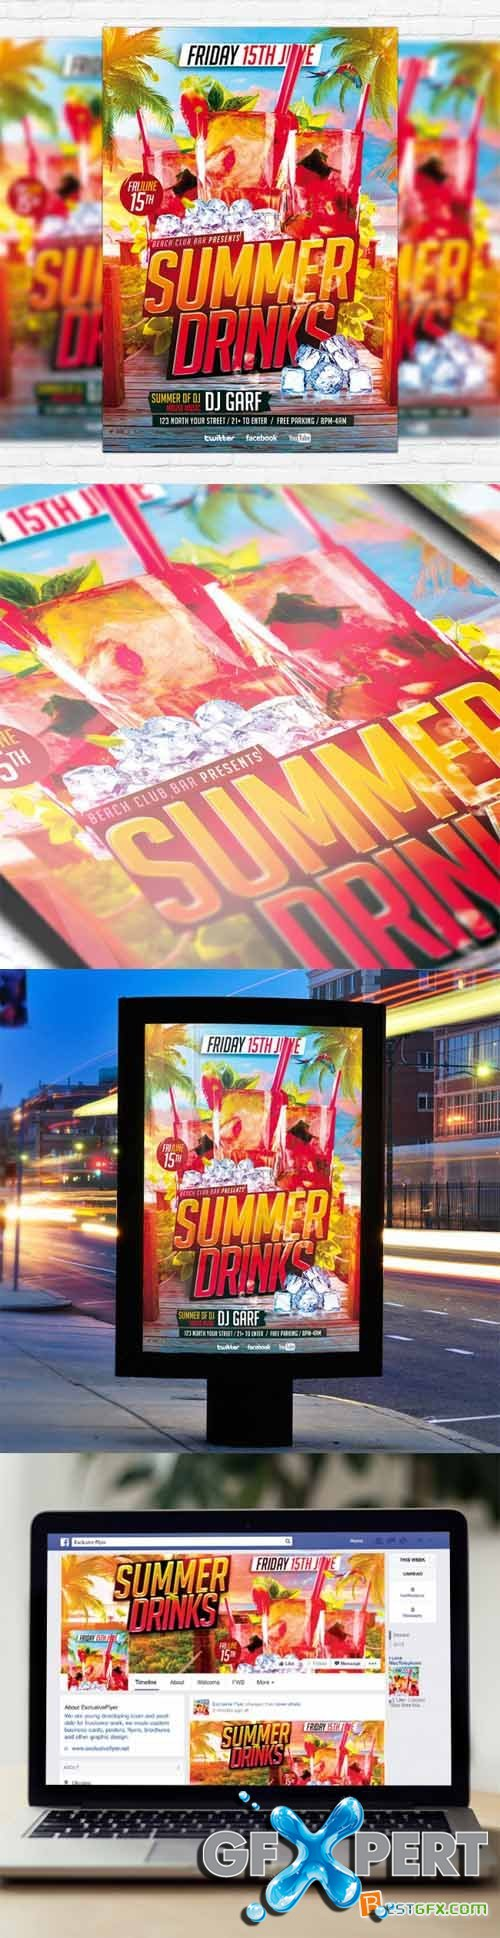 Flyer Template - Summer Drinks + Facebook Cover